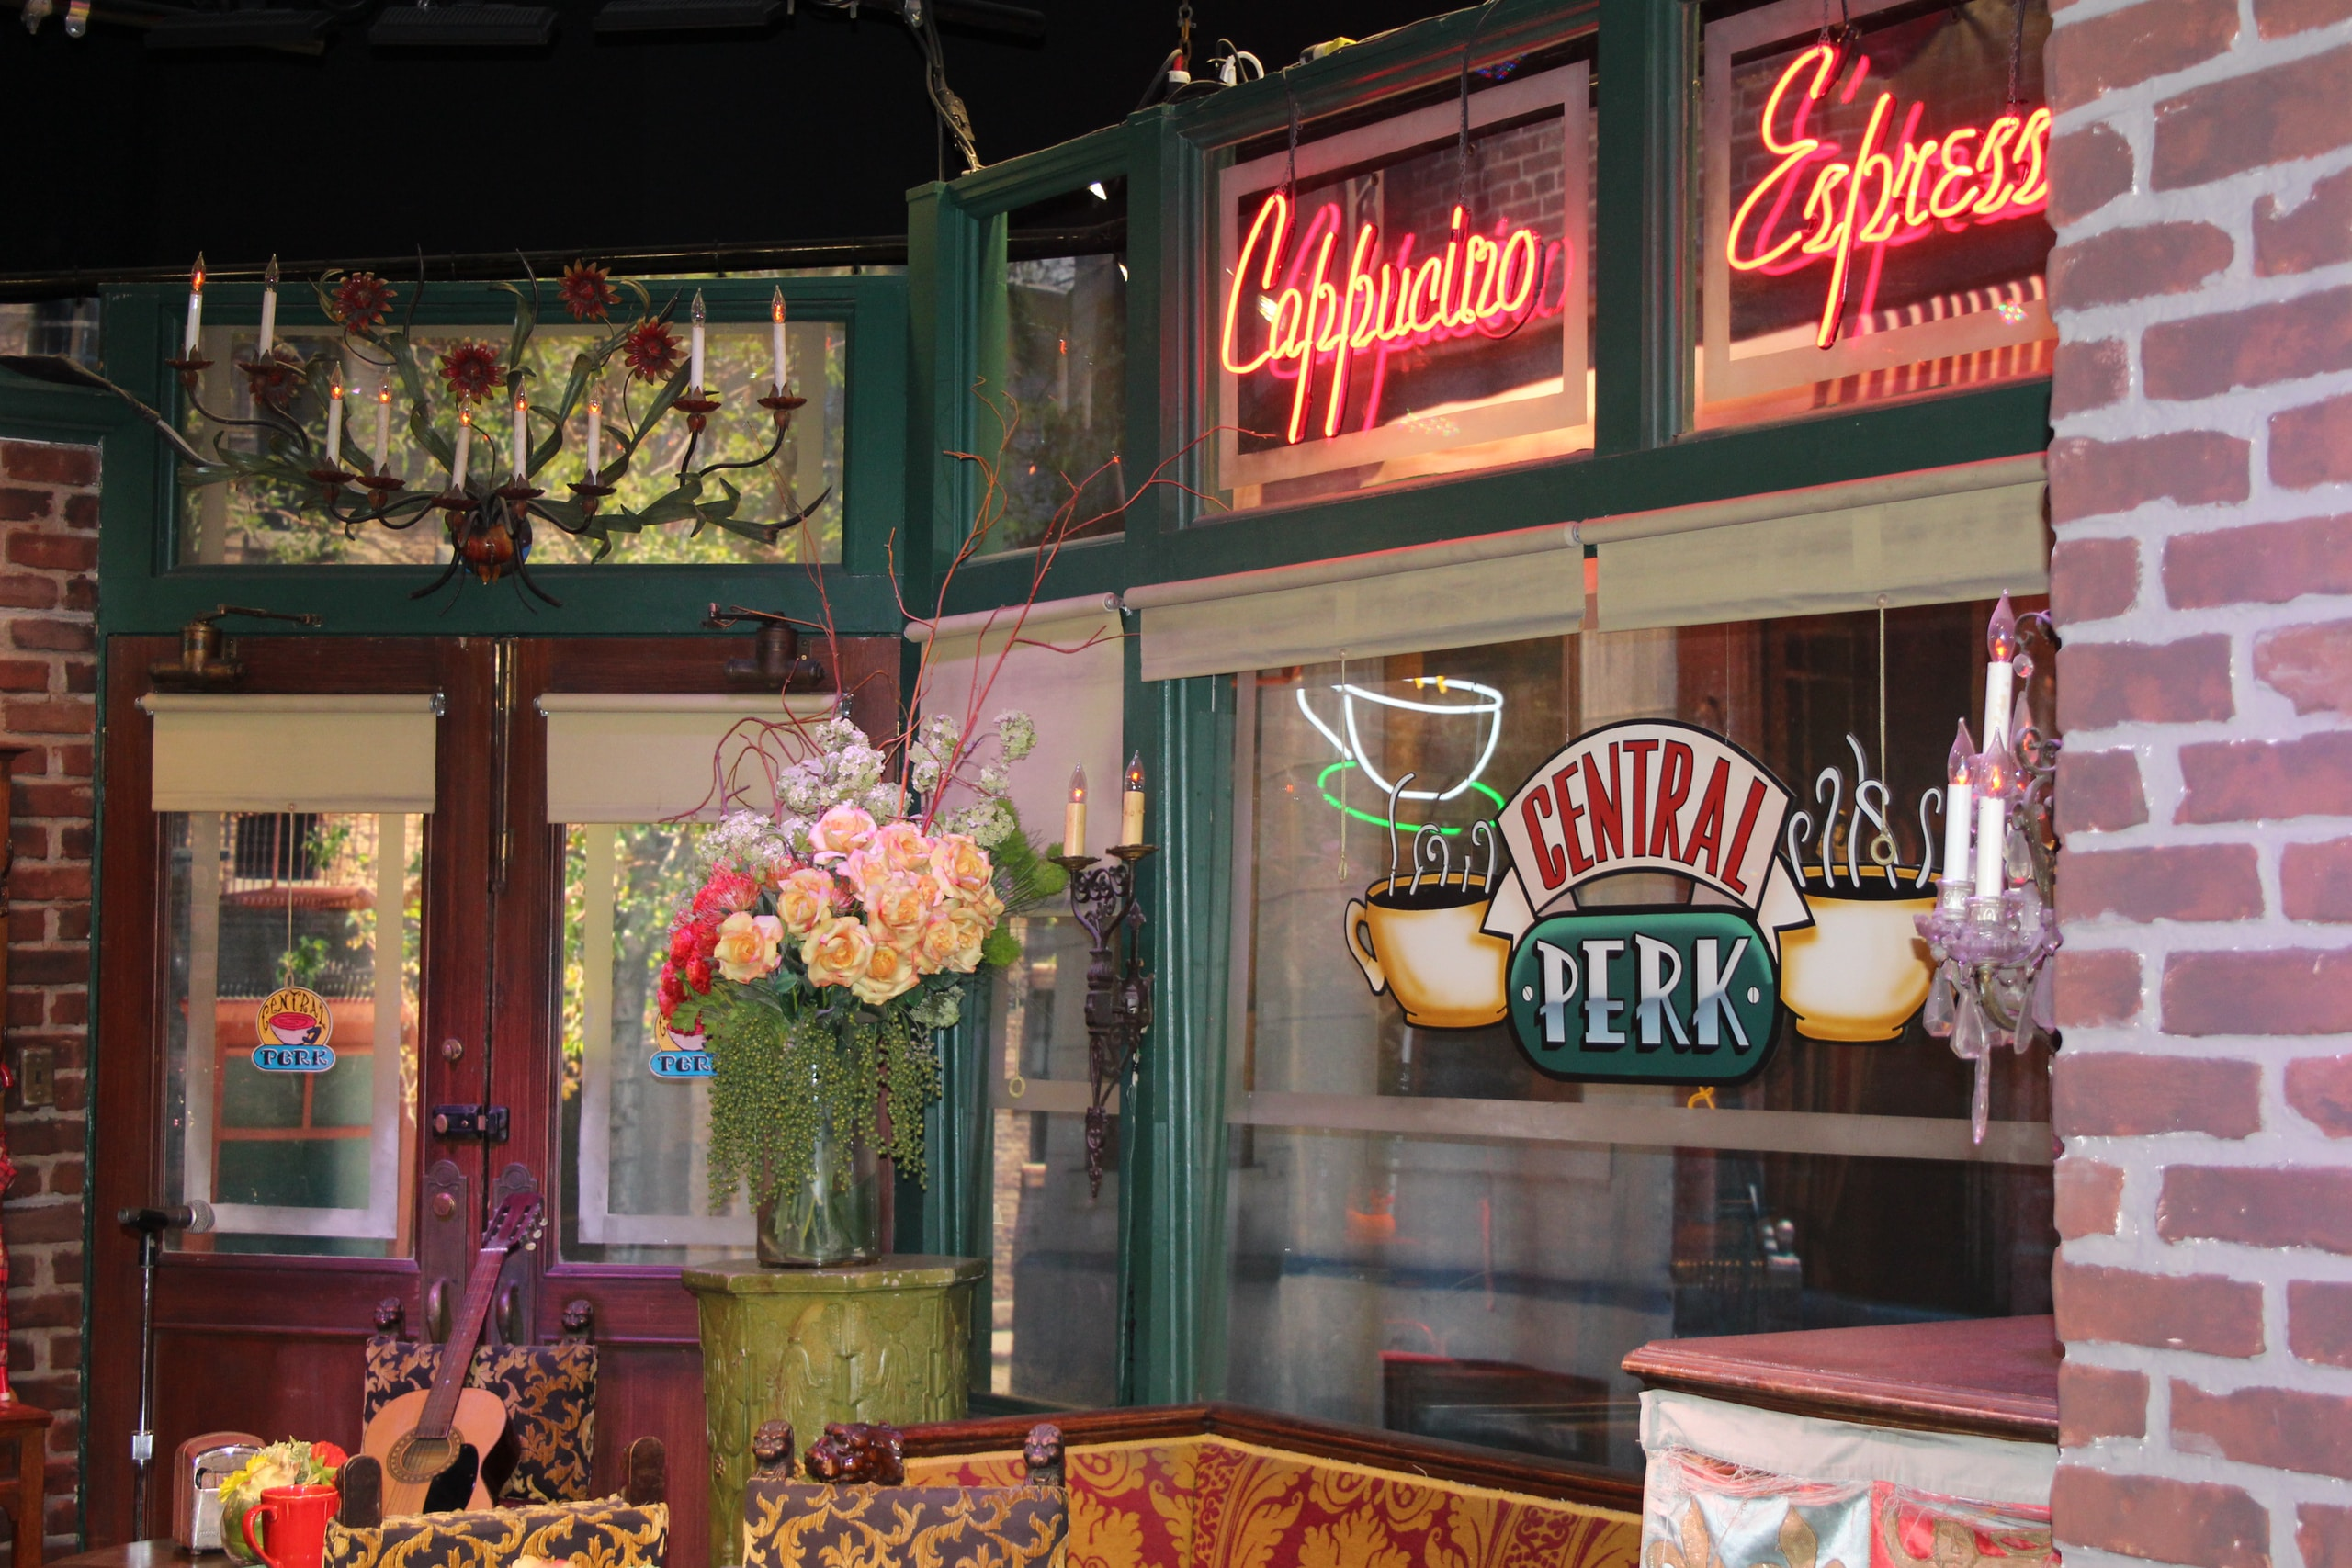 The original Film set of the series Friends at Warner Brothers in Los Angeles